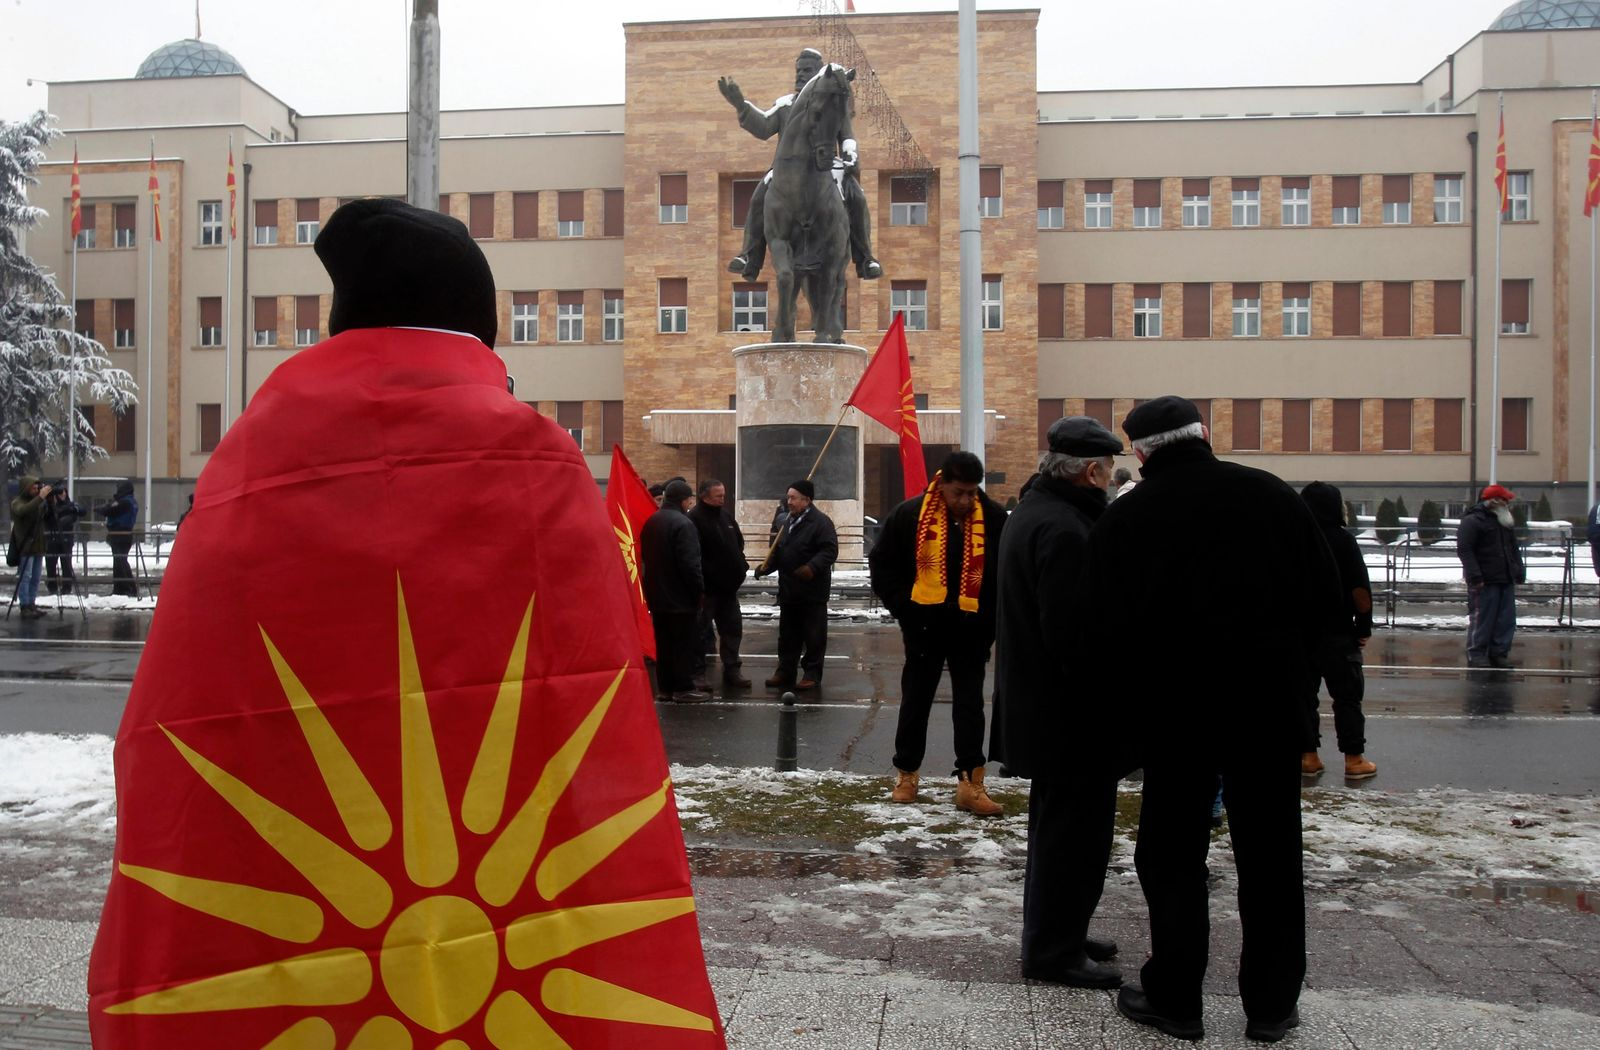 People gather to a protest against the change of the country's name outside the parliament building during a session of the Macedonian Parliament in the capital Skopje, Friday, Jan. 11, 2019. (AP Photo/Boris Grdanoski)